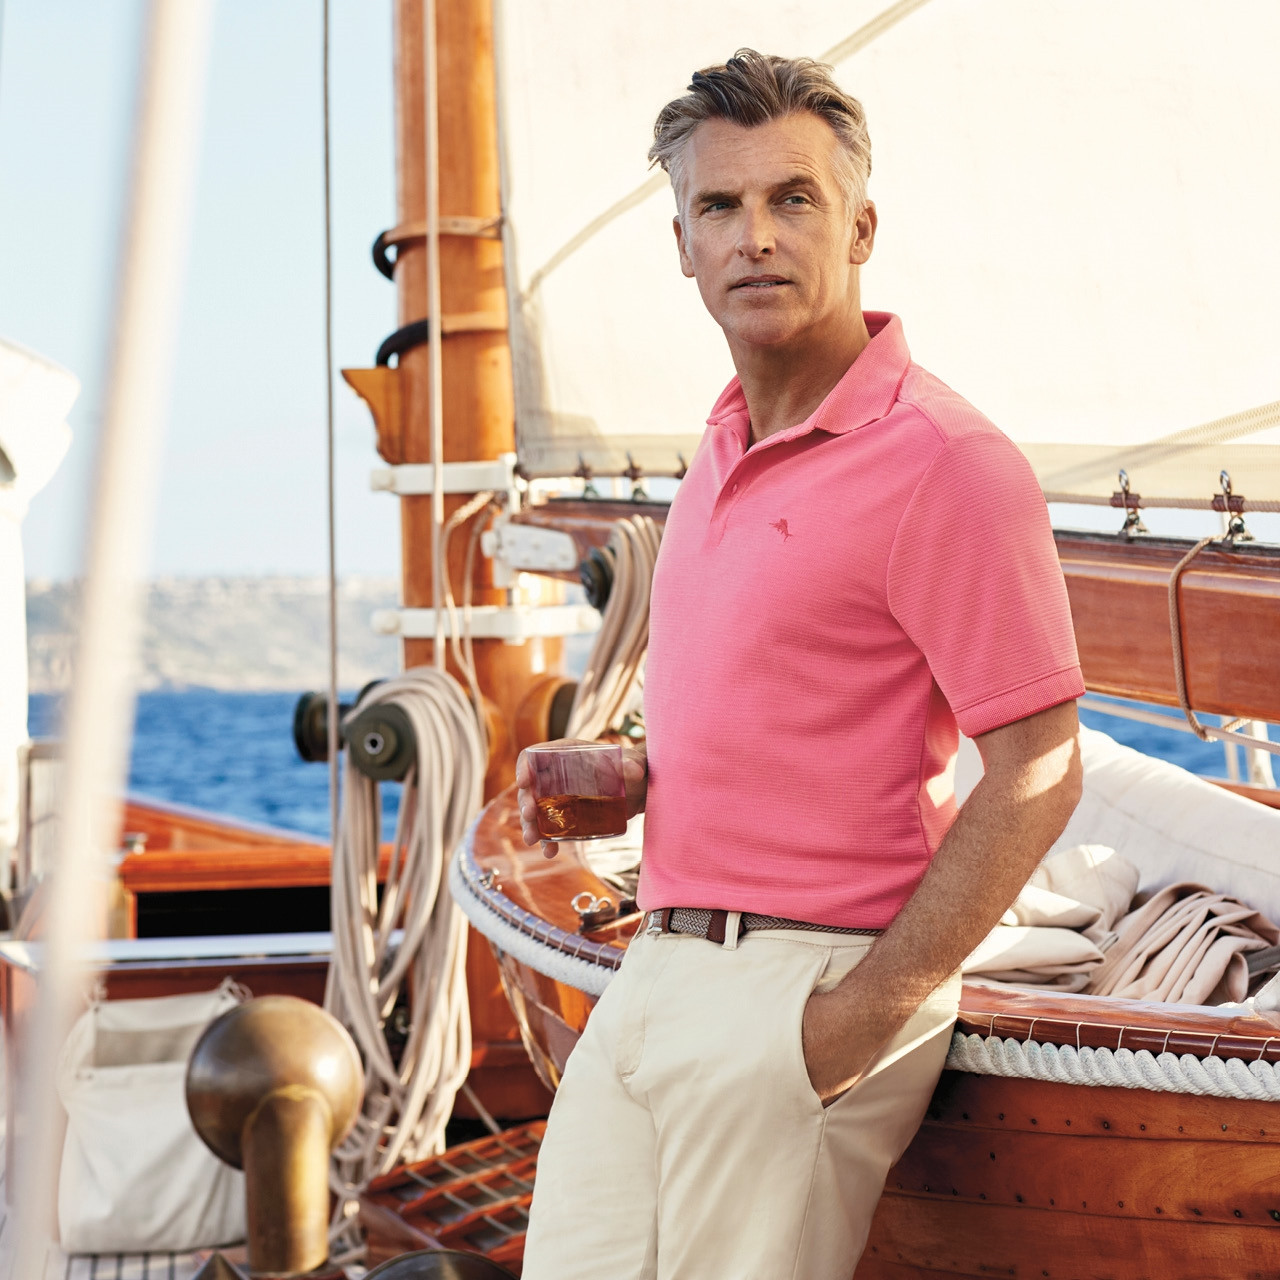 Image of man wearing Tommy Bahama apparel